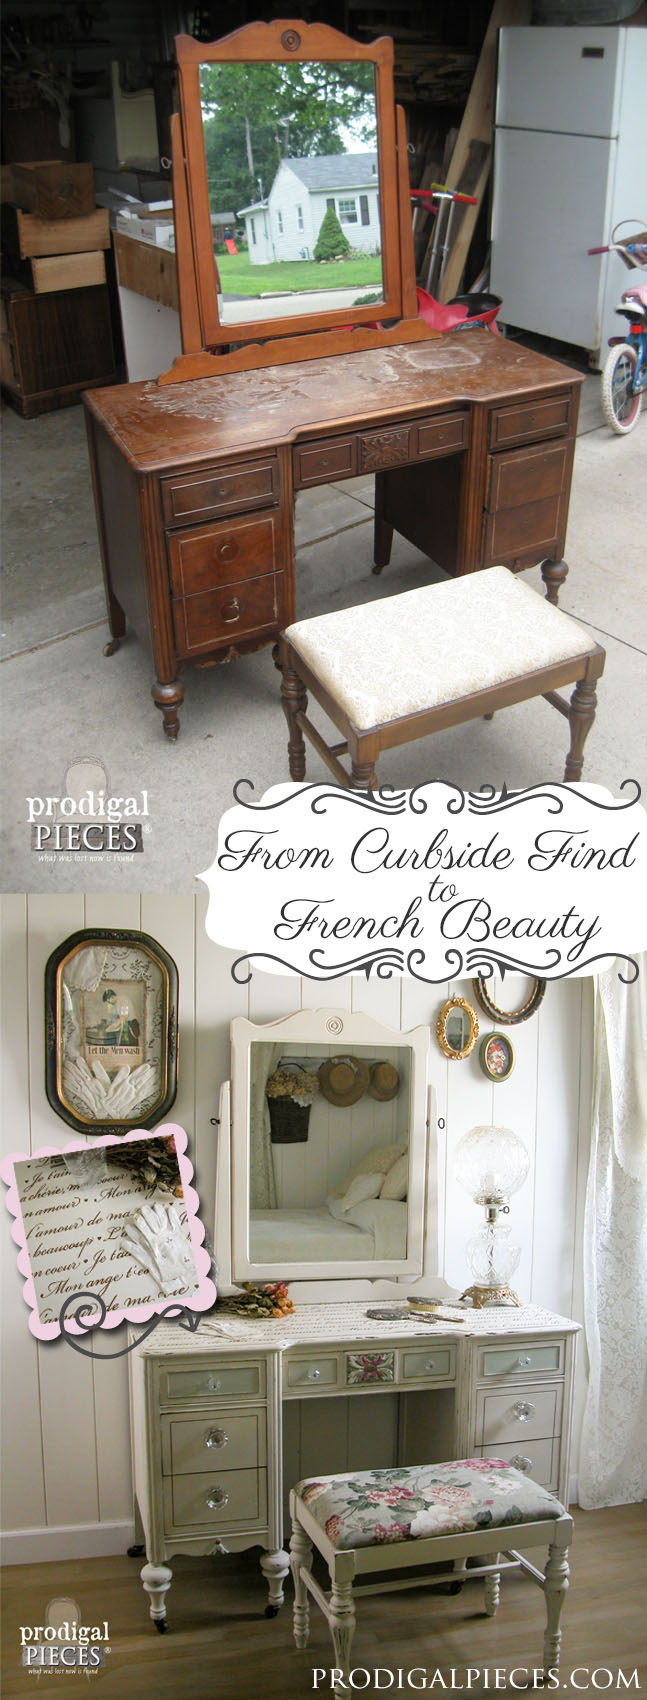 Curbside Vanity is Renewed with Fresh Look and French Script Stenci by Prodigal Pieces | prodigalpieces.com